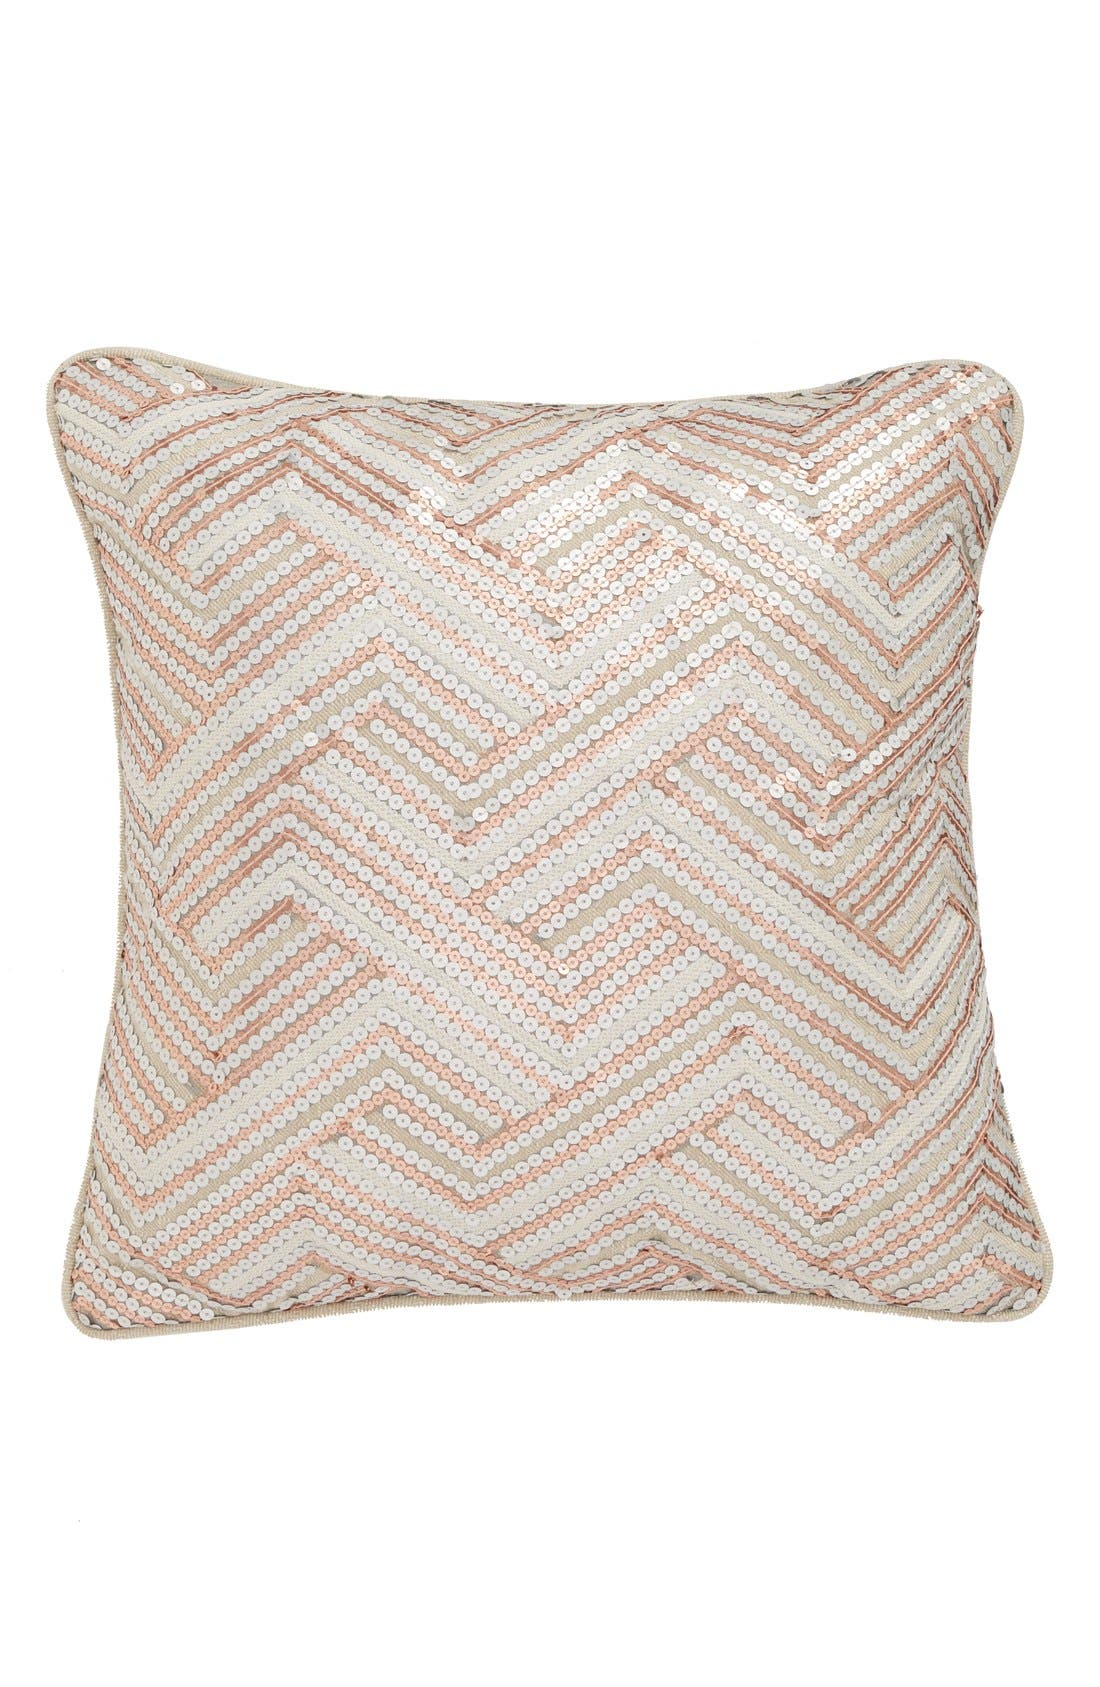 Villa Home Collection 'Lona' Sequin Accent Pillow